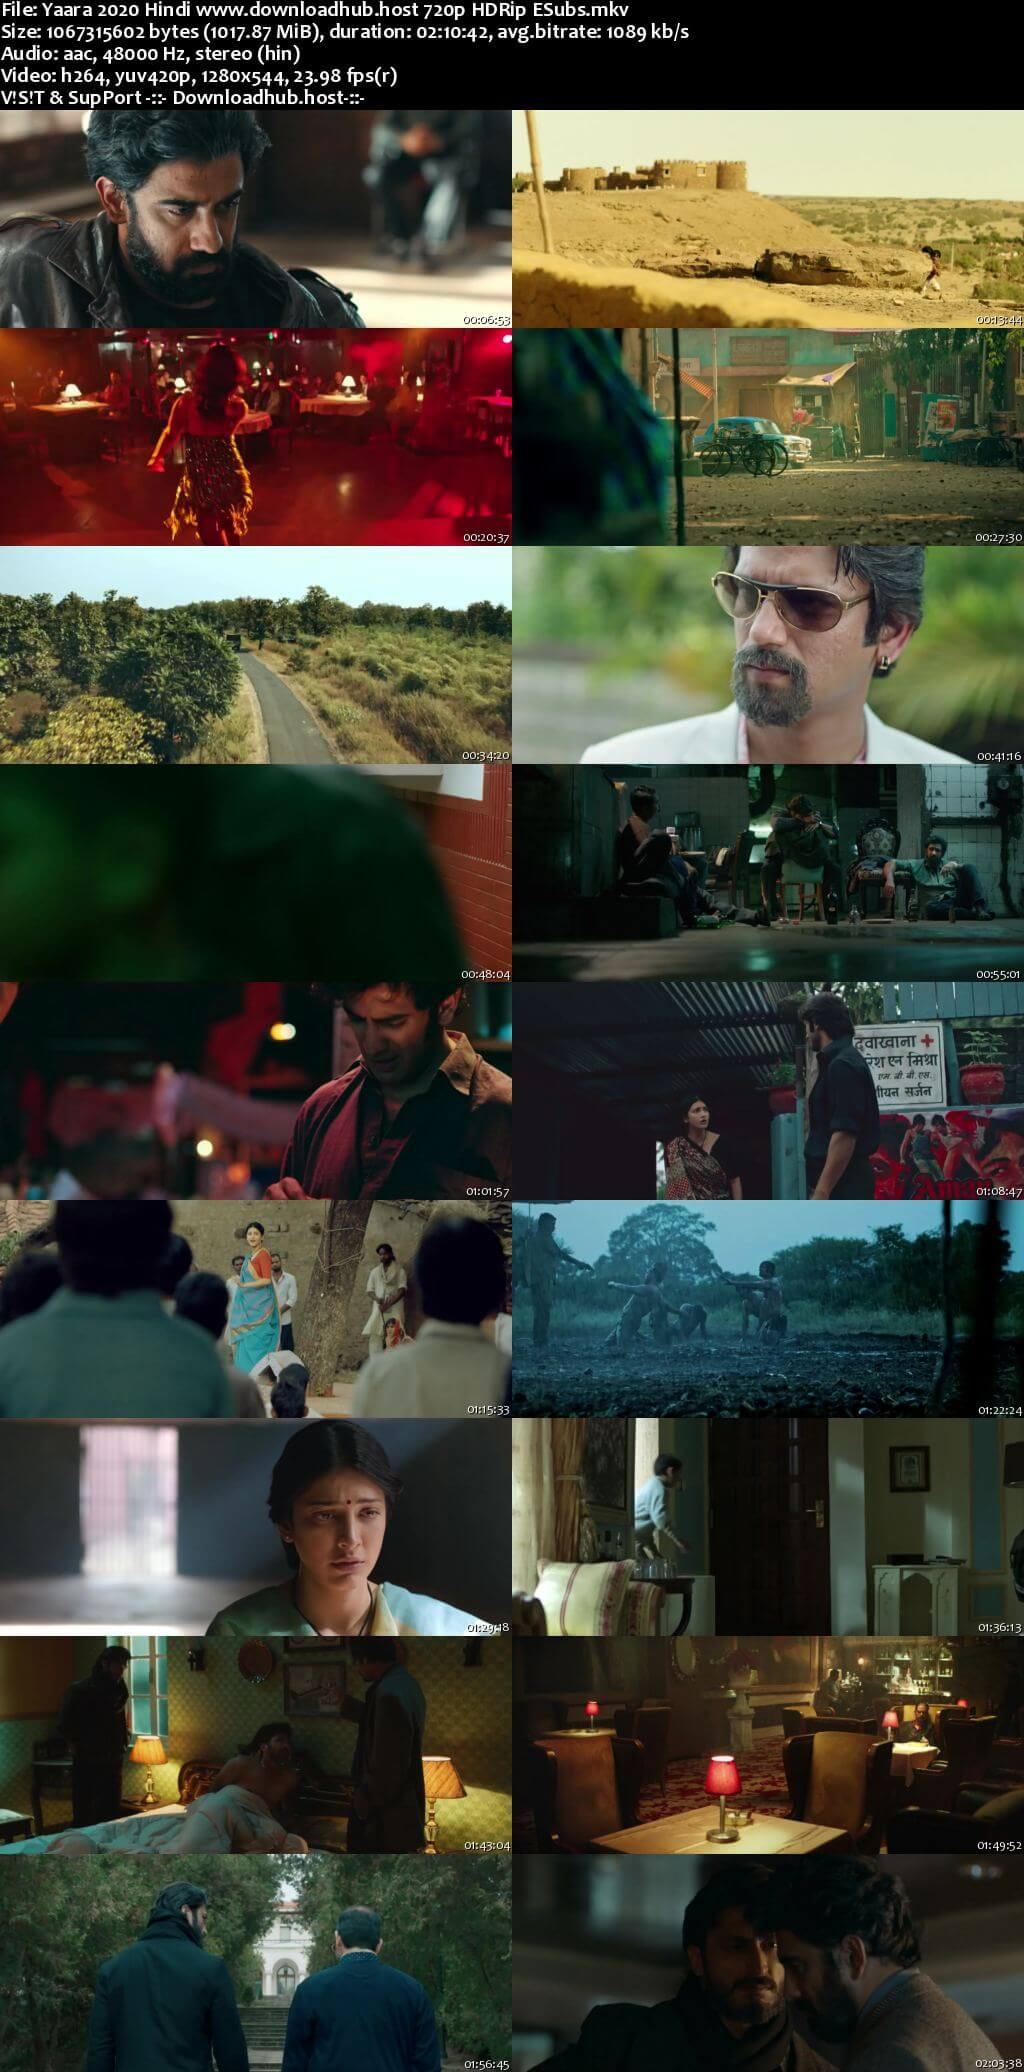 Yaara 2020 Hindi 720p HDRip ESubs